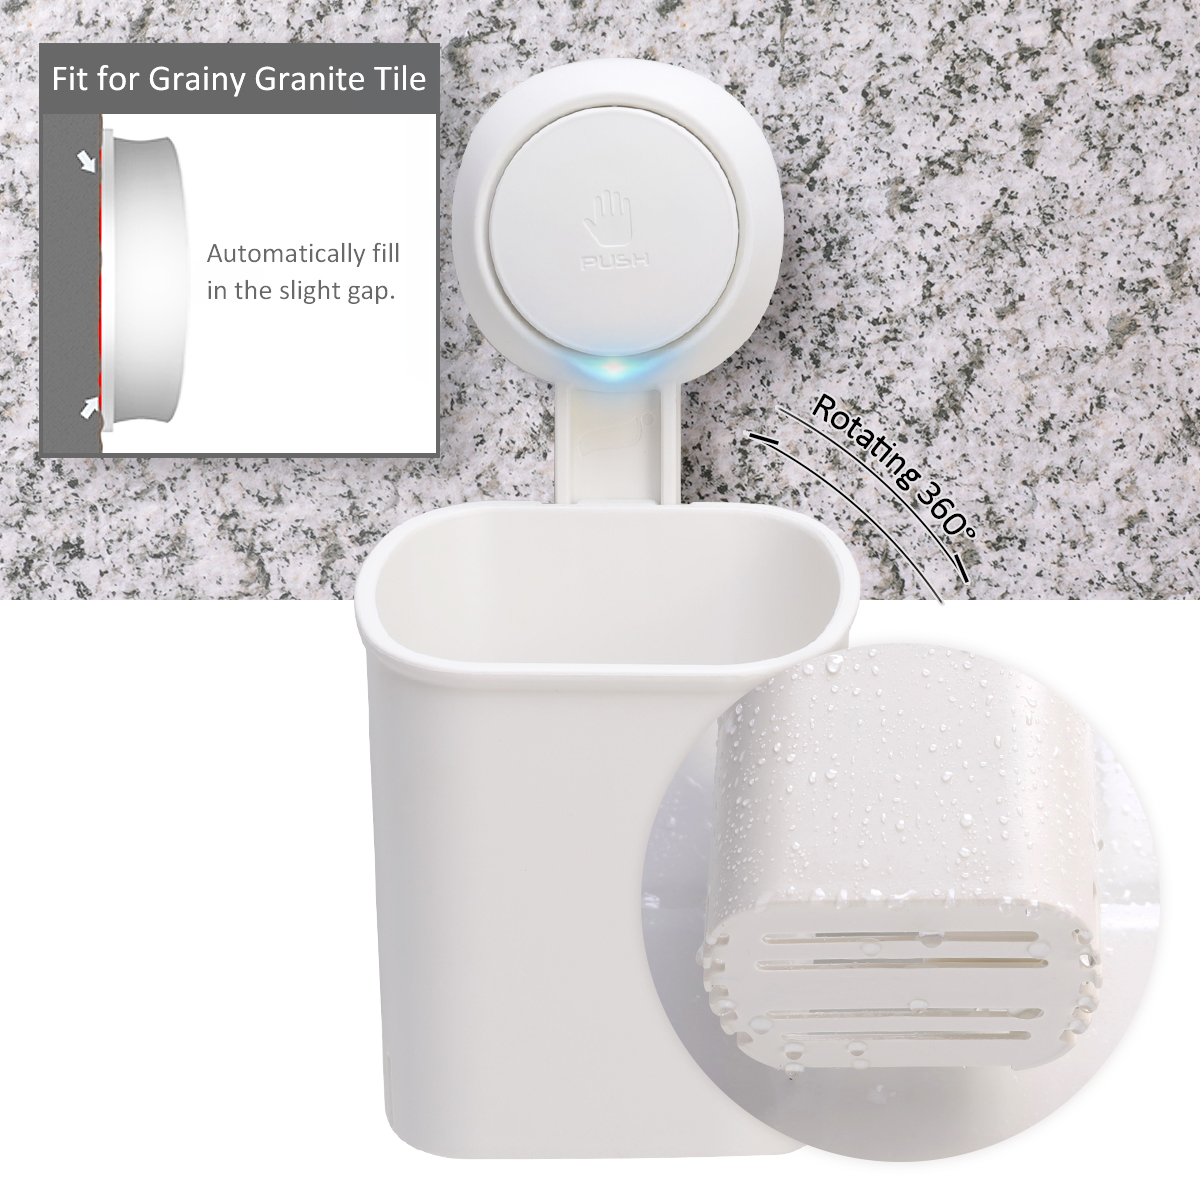 Taili Suction Cup Toothbrush Holder Drill-Free Wall Mounted Electric Toothbrush,